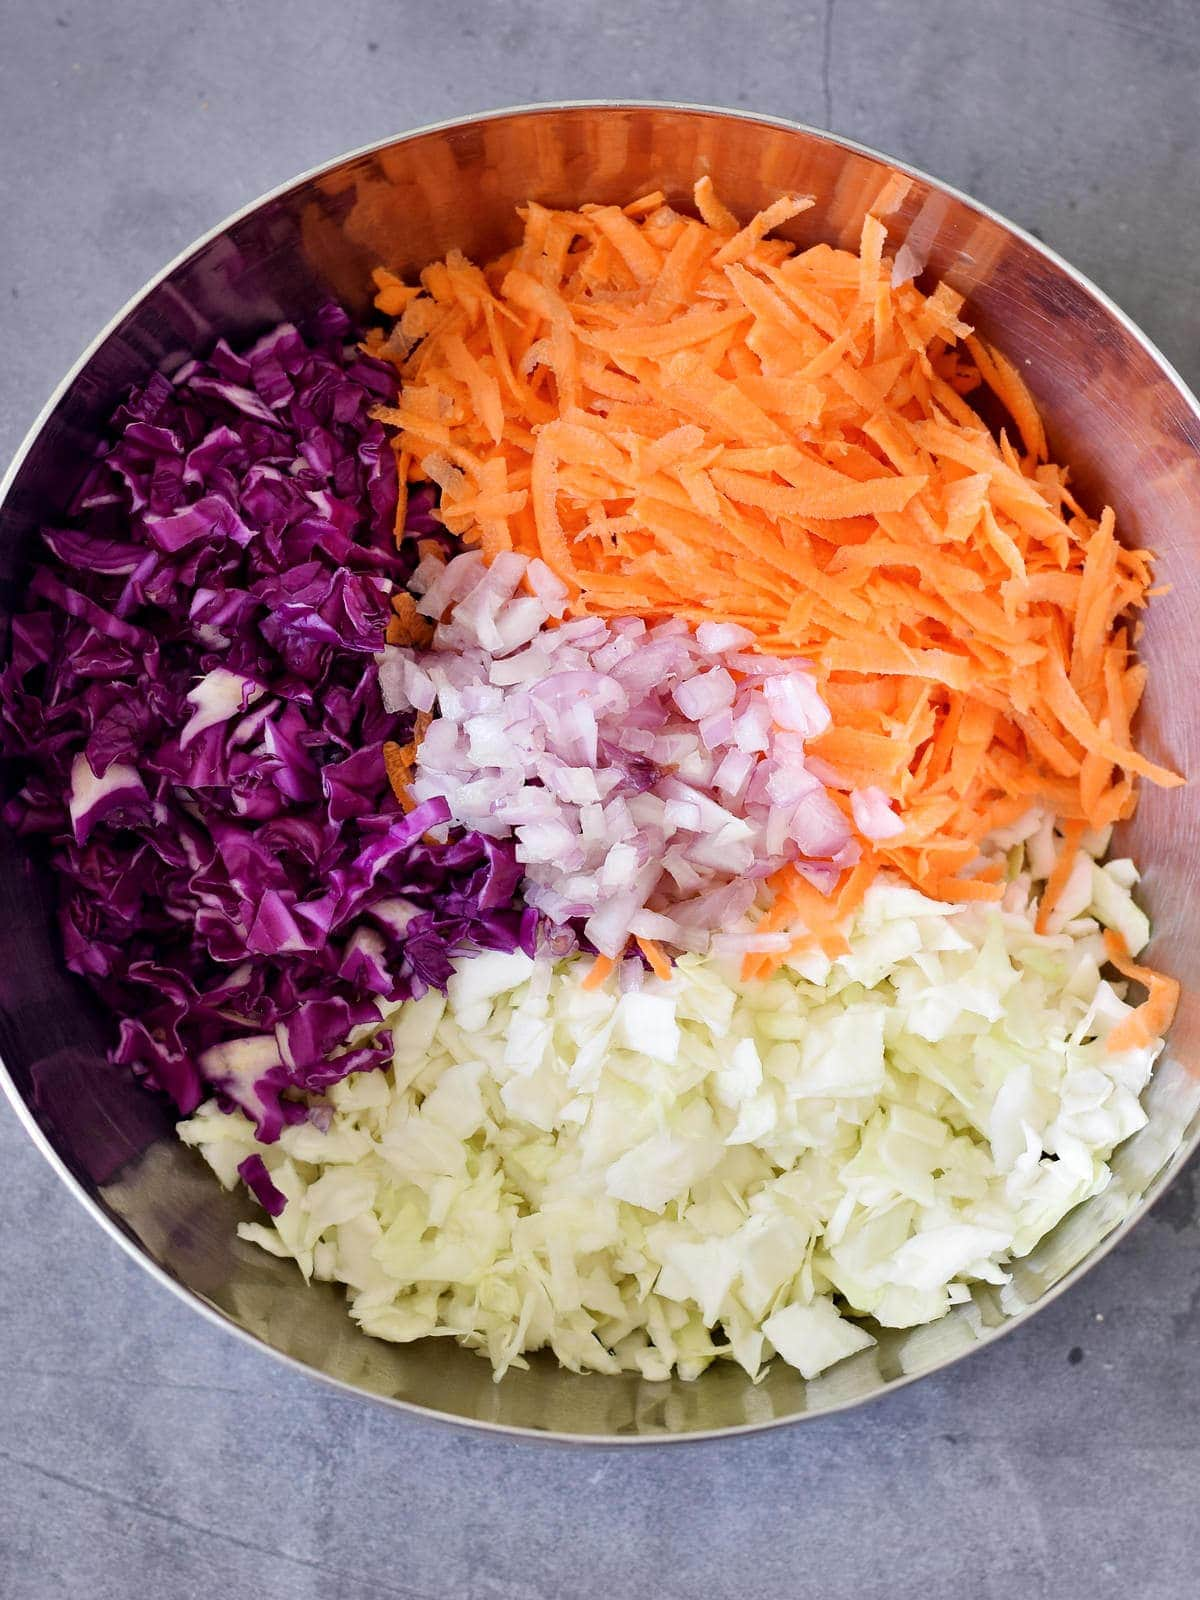 shredded cabbage, carrot, and onion in a bowl